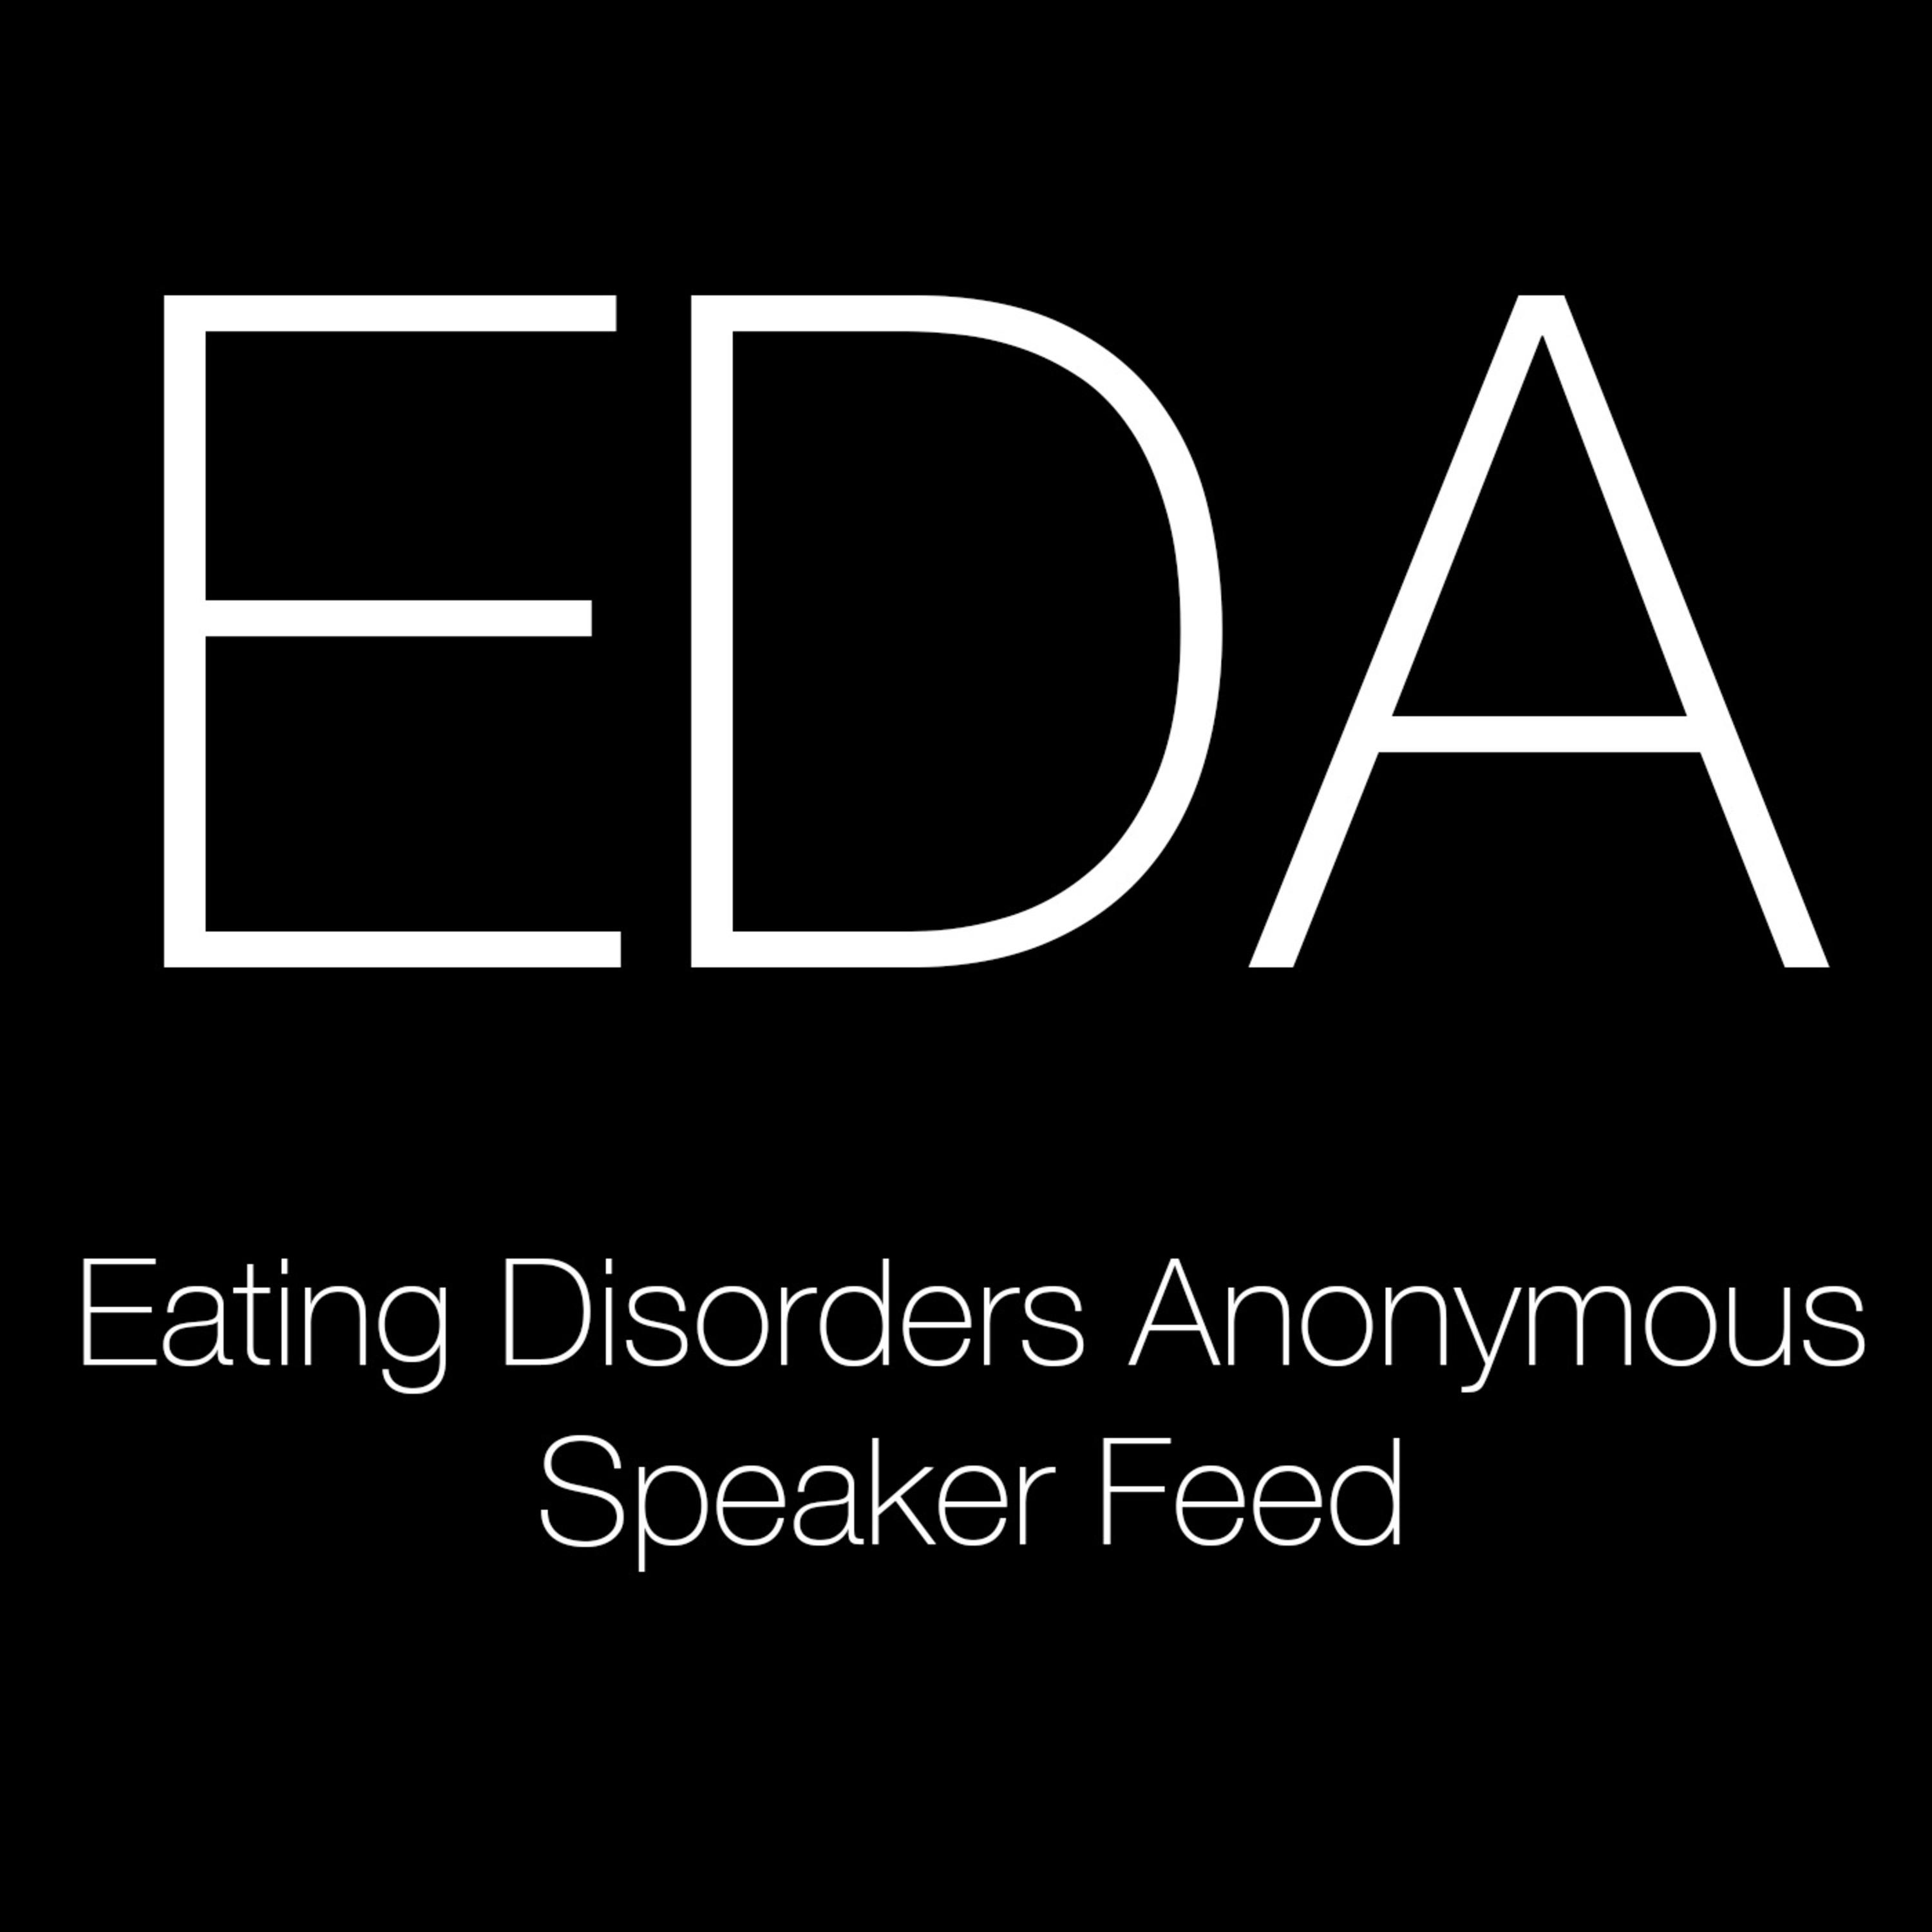 Eating Disorders Anonymous (EDA) Speaker Feed Podcast | Free